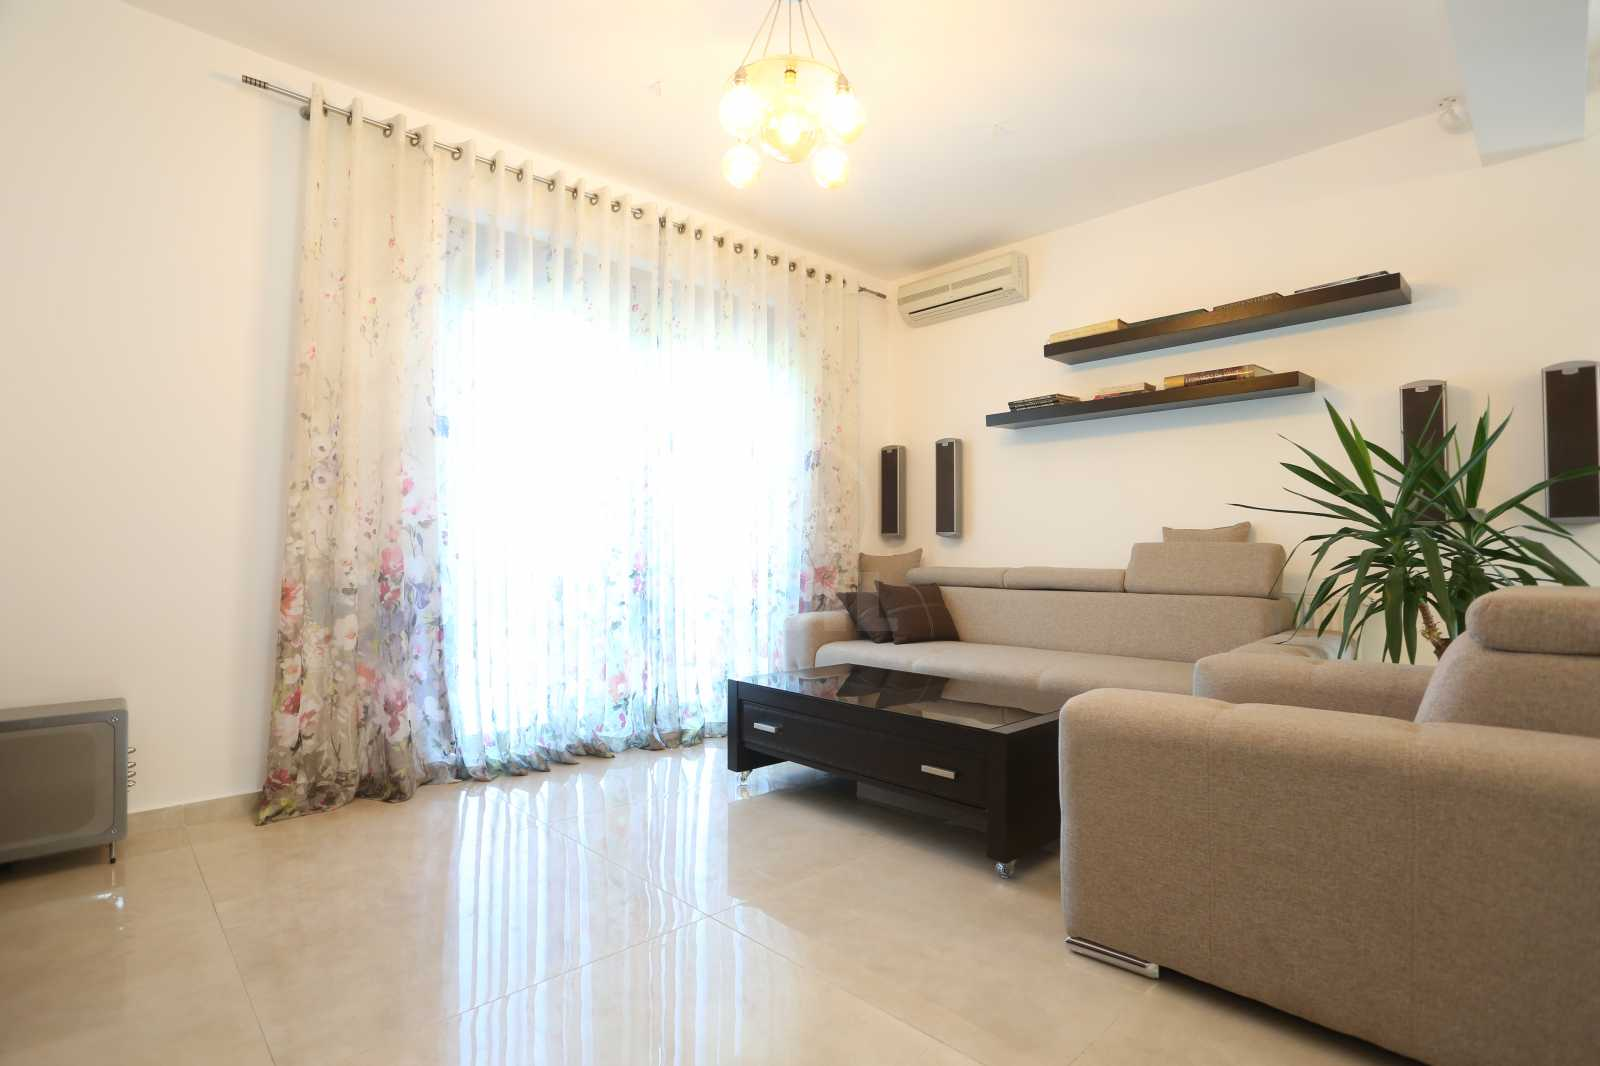 House for rent 7 rooms, CACJ289364-3